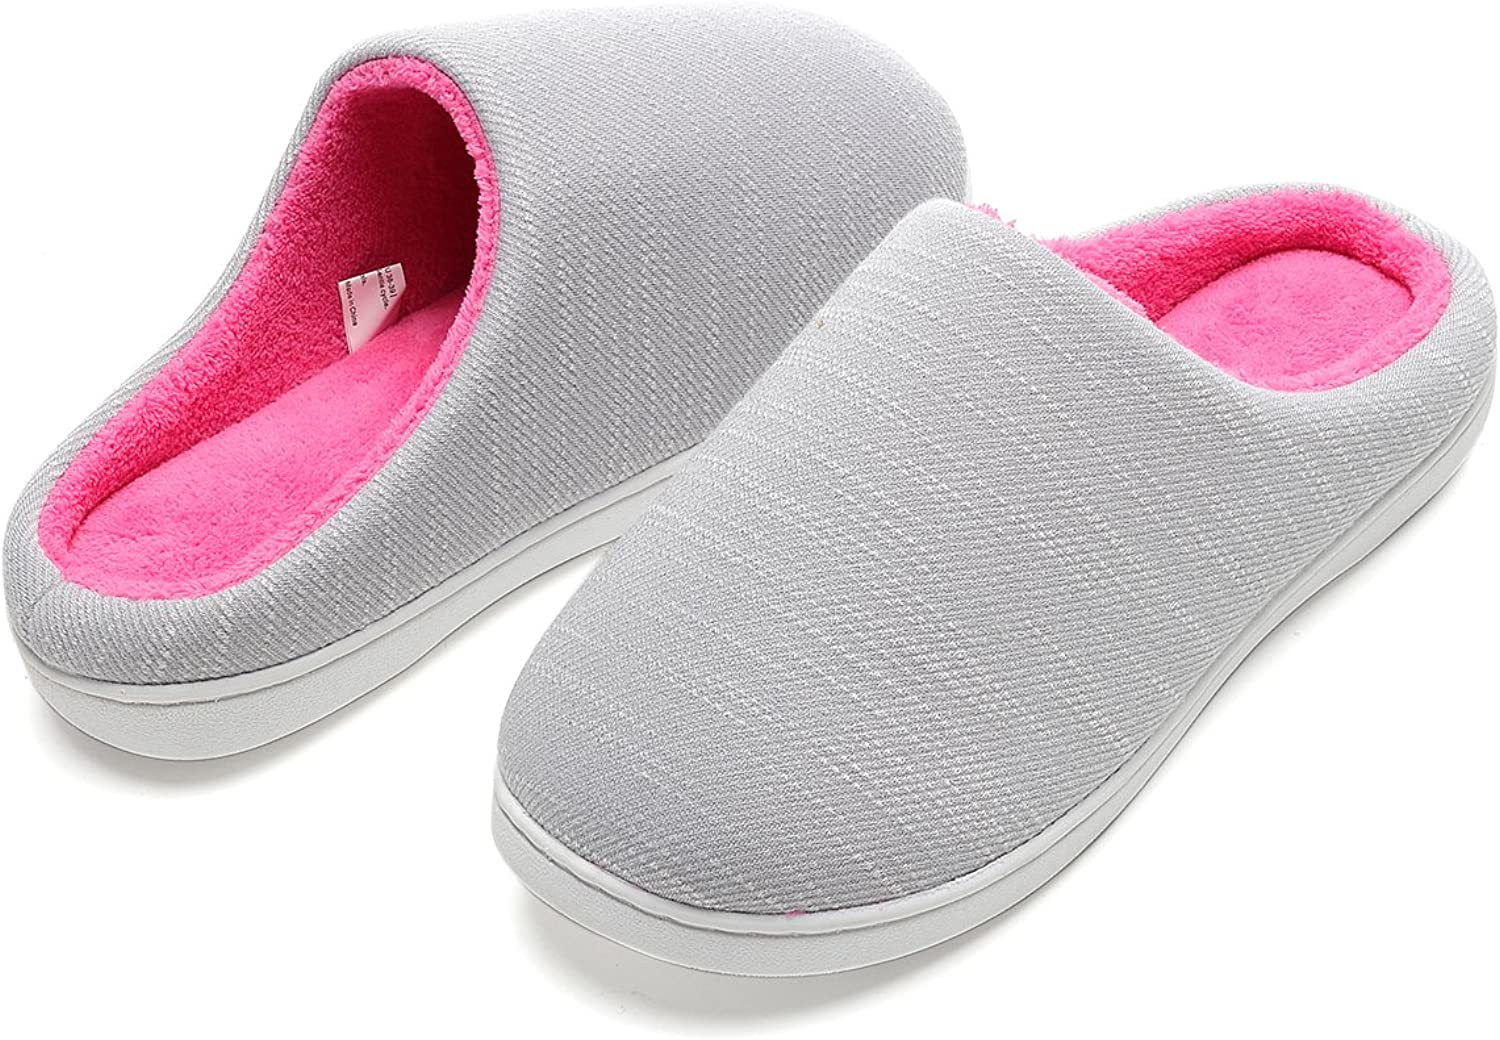 Men's and Women's Two-Tone Fuzzy Slip-on Memory Foam Slippers Faux Fur Lined Cozy House shoes for Indoor & Outdoor with Anti-Skid Sole